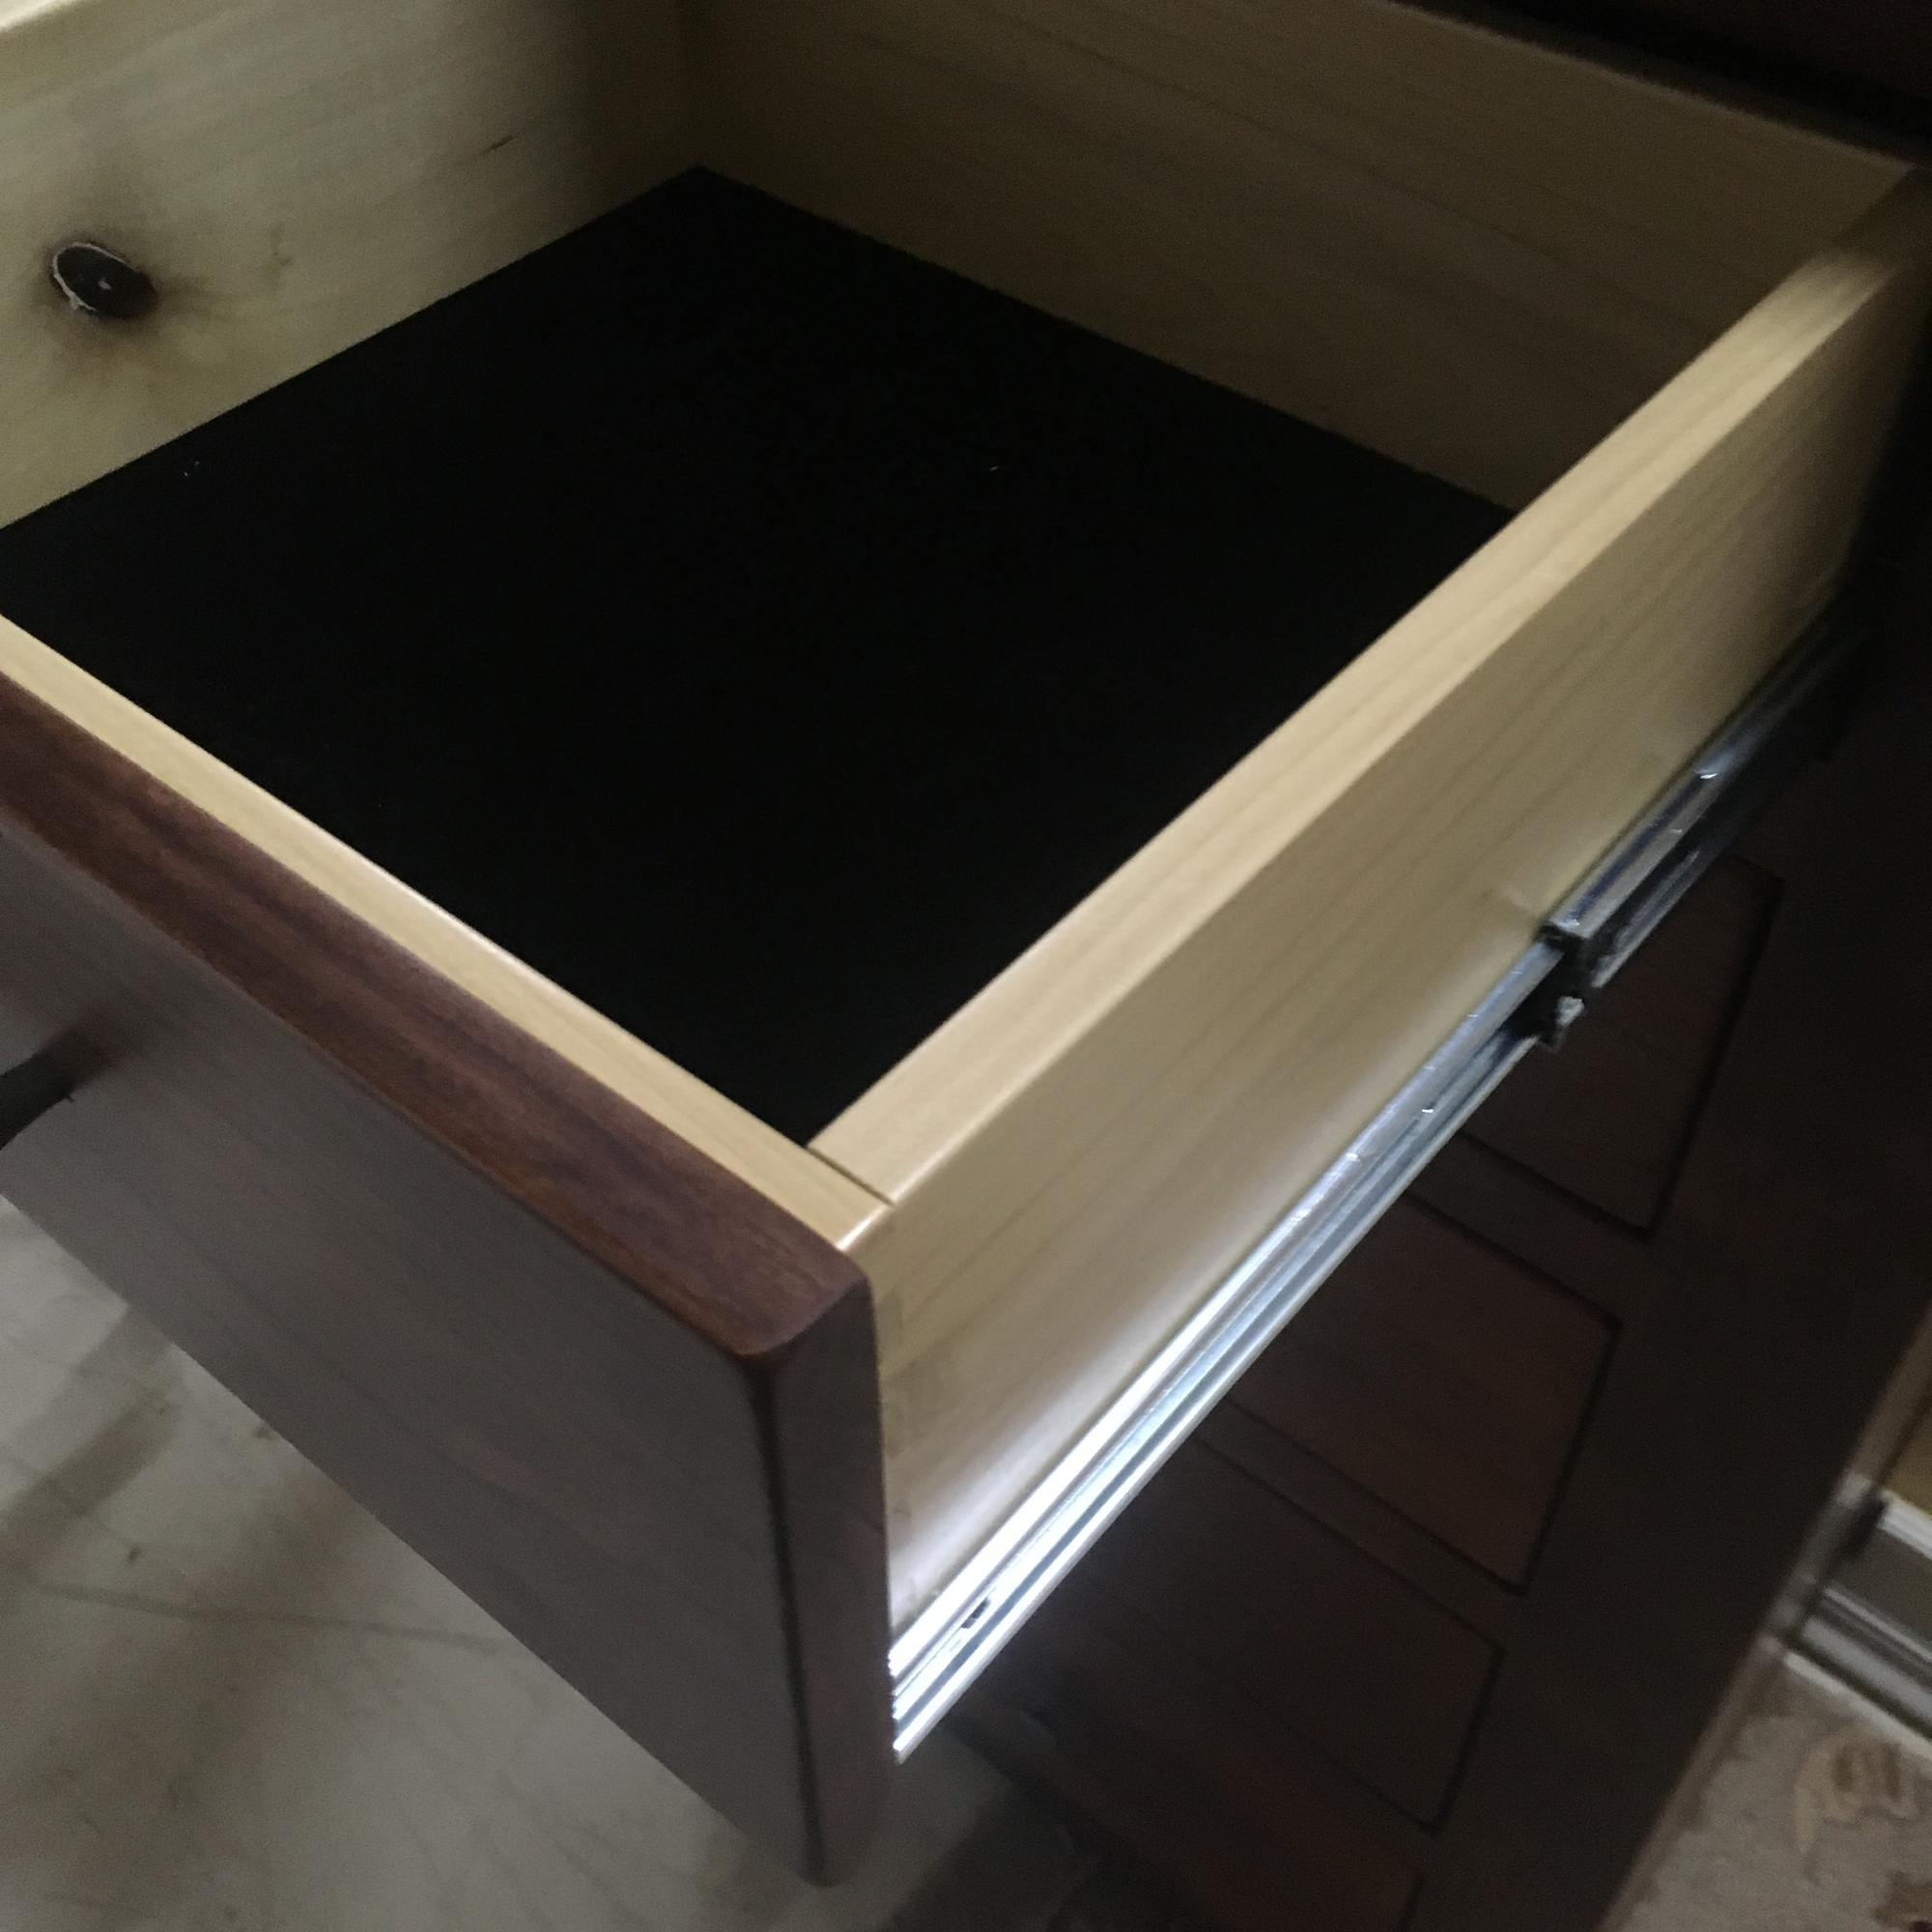 Drawer construction is solid wood with roller bearing glides